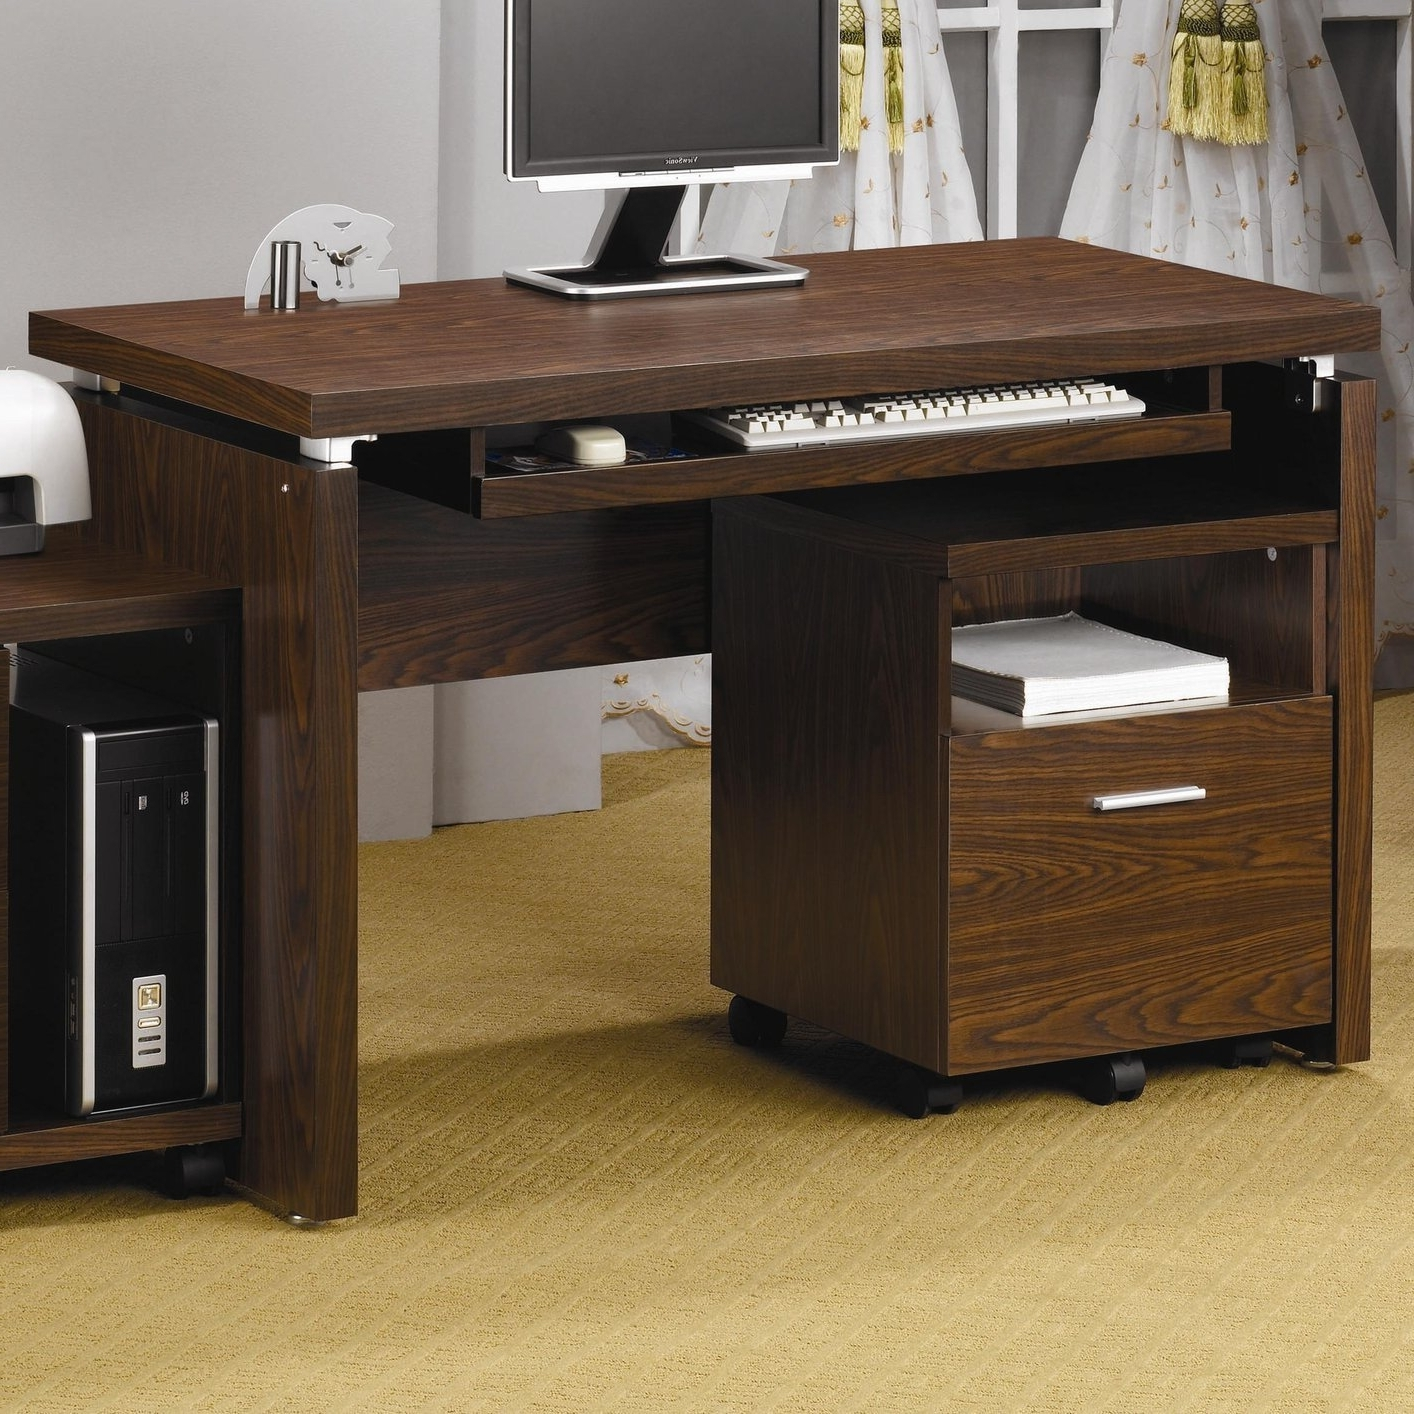 Black Wood Computer Desk – Steal A Sofa Furniture Outlet Los Intended For Most Current Computer Desks (View 4 of 20)